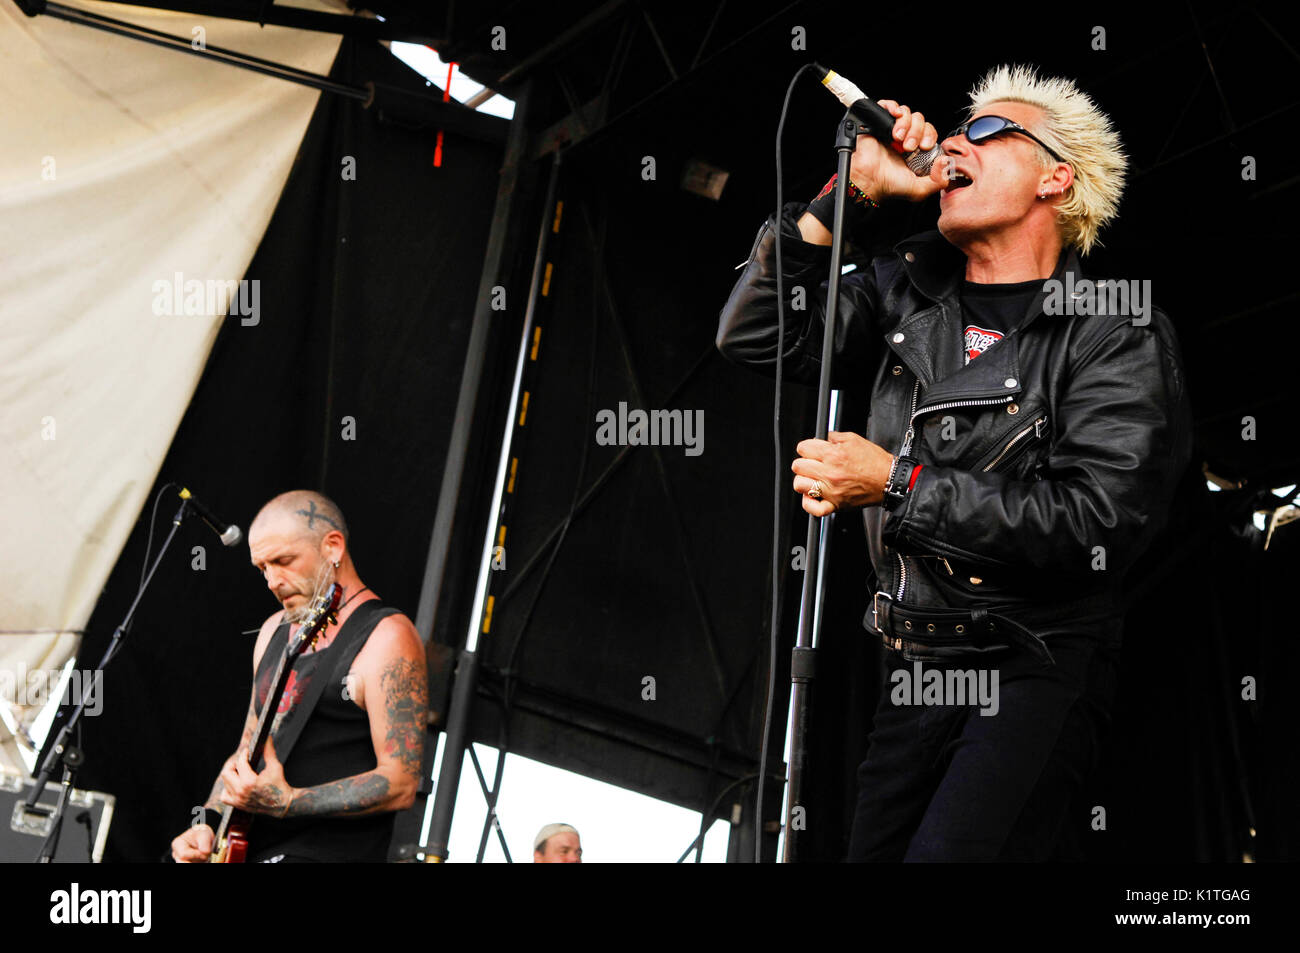 (L-R) Guitarist Colin 'Jock' Blyth vocalist Collin Abrahall Charged GBH performing 2008 Vans Warped Tour Coors Amphitheater San Diego. - Stock Image